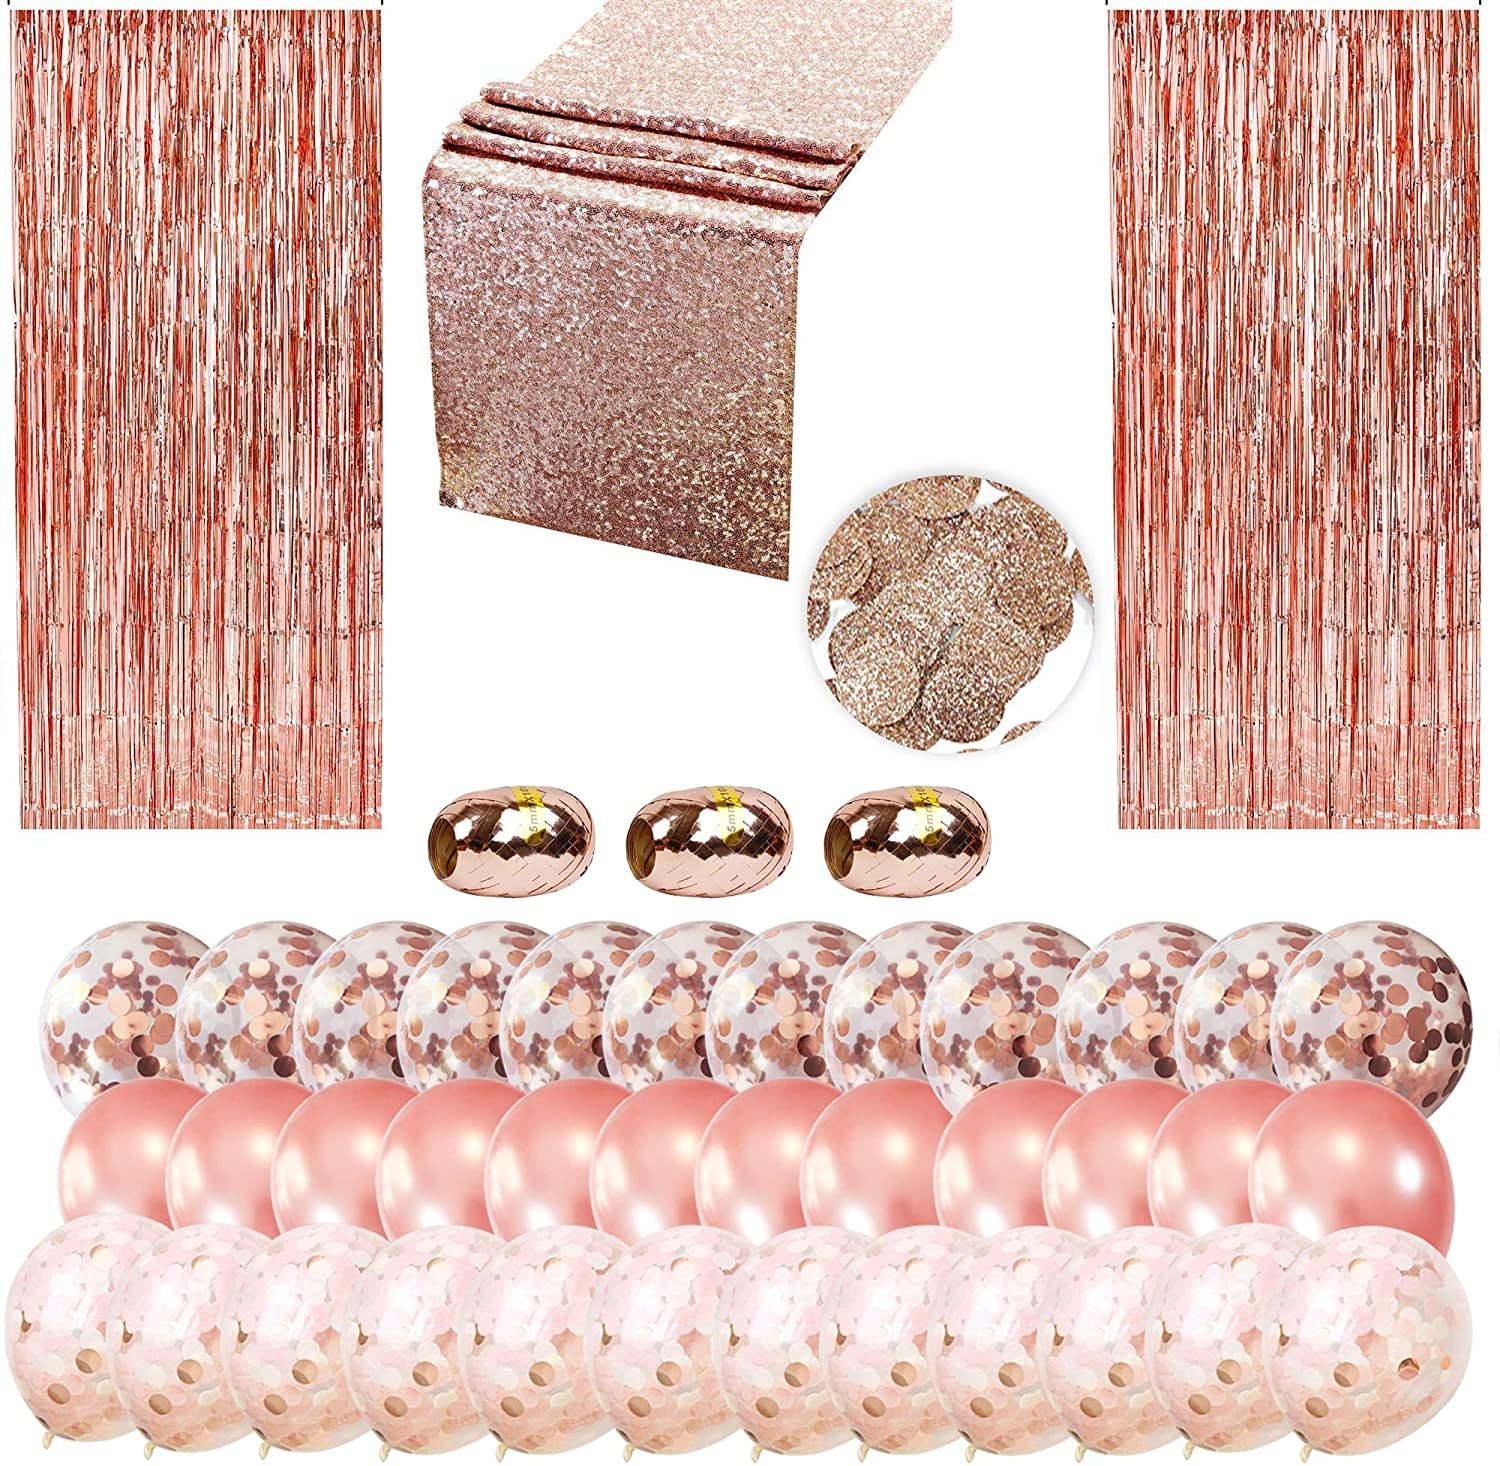 Rose Gold Party Decorations Supply Kit- Package Includes 12 Rose Gold and 24 Confetti Balloons, 2 Foil Fringes, 3 Ribbons,1 Table Runner and 1 Confetti Bag- 43pcs Party Decor